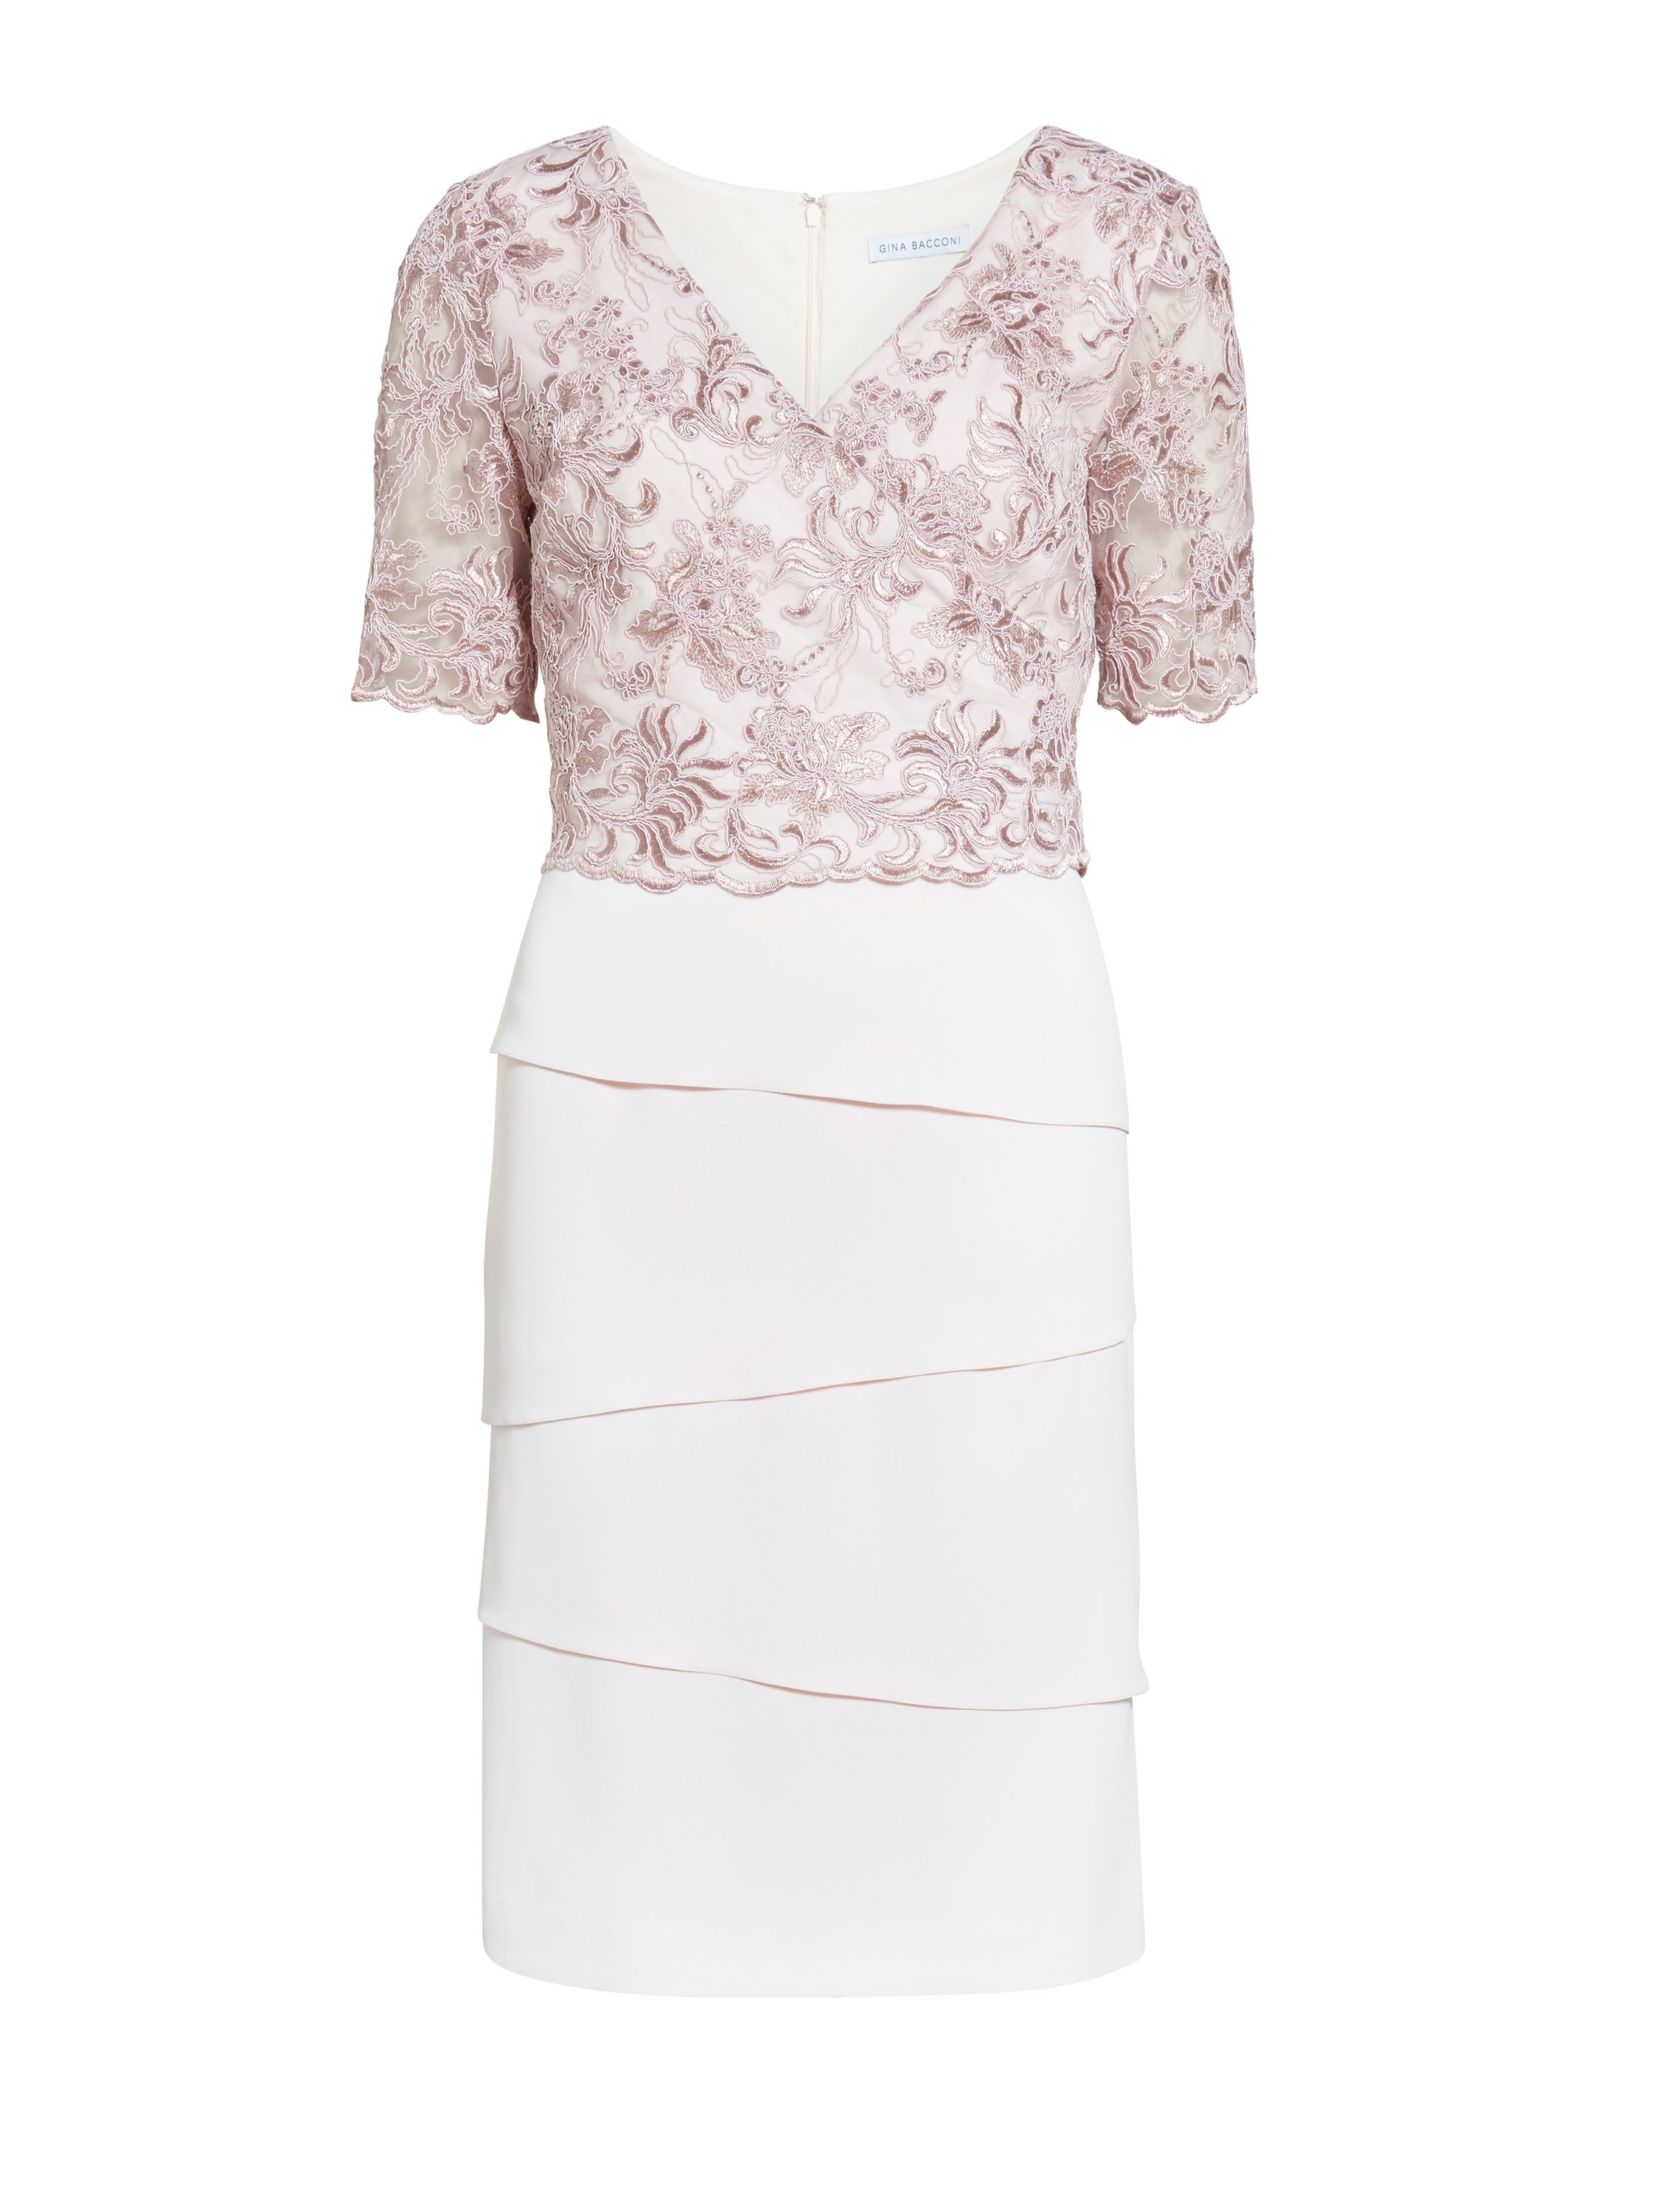 Gina Bacconi Crepe dress with cord embroidery bodice, Pink